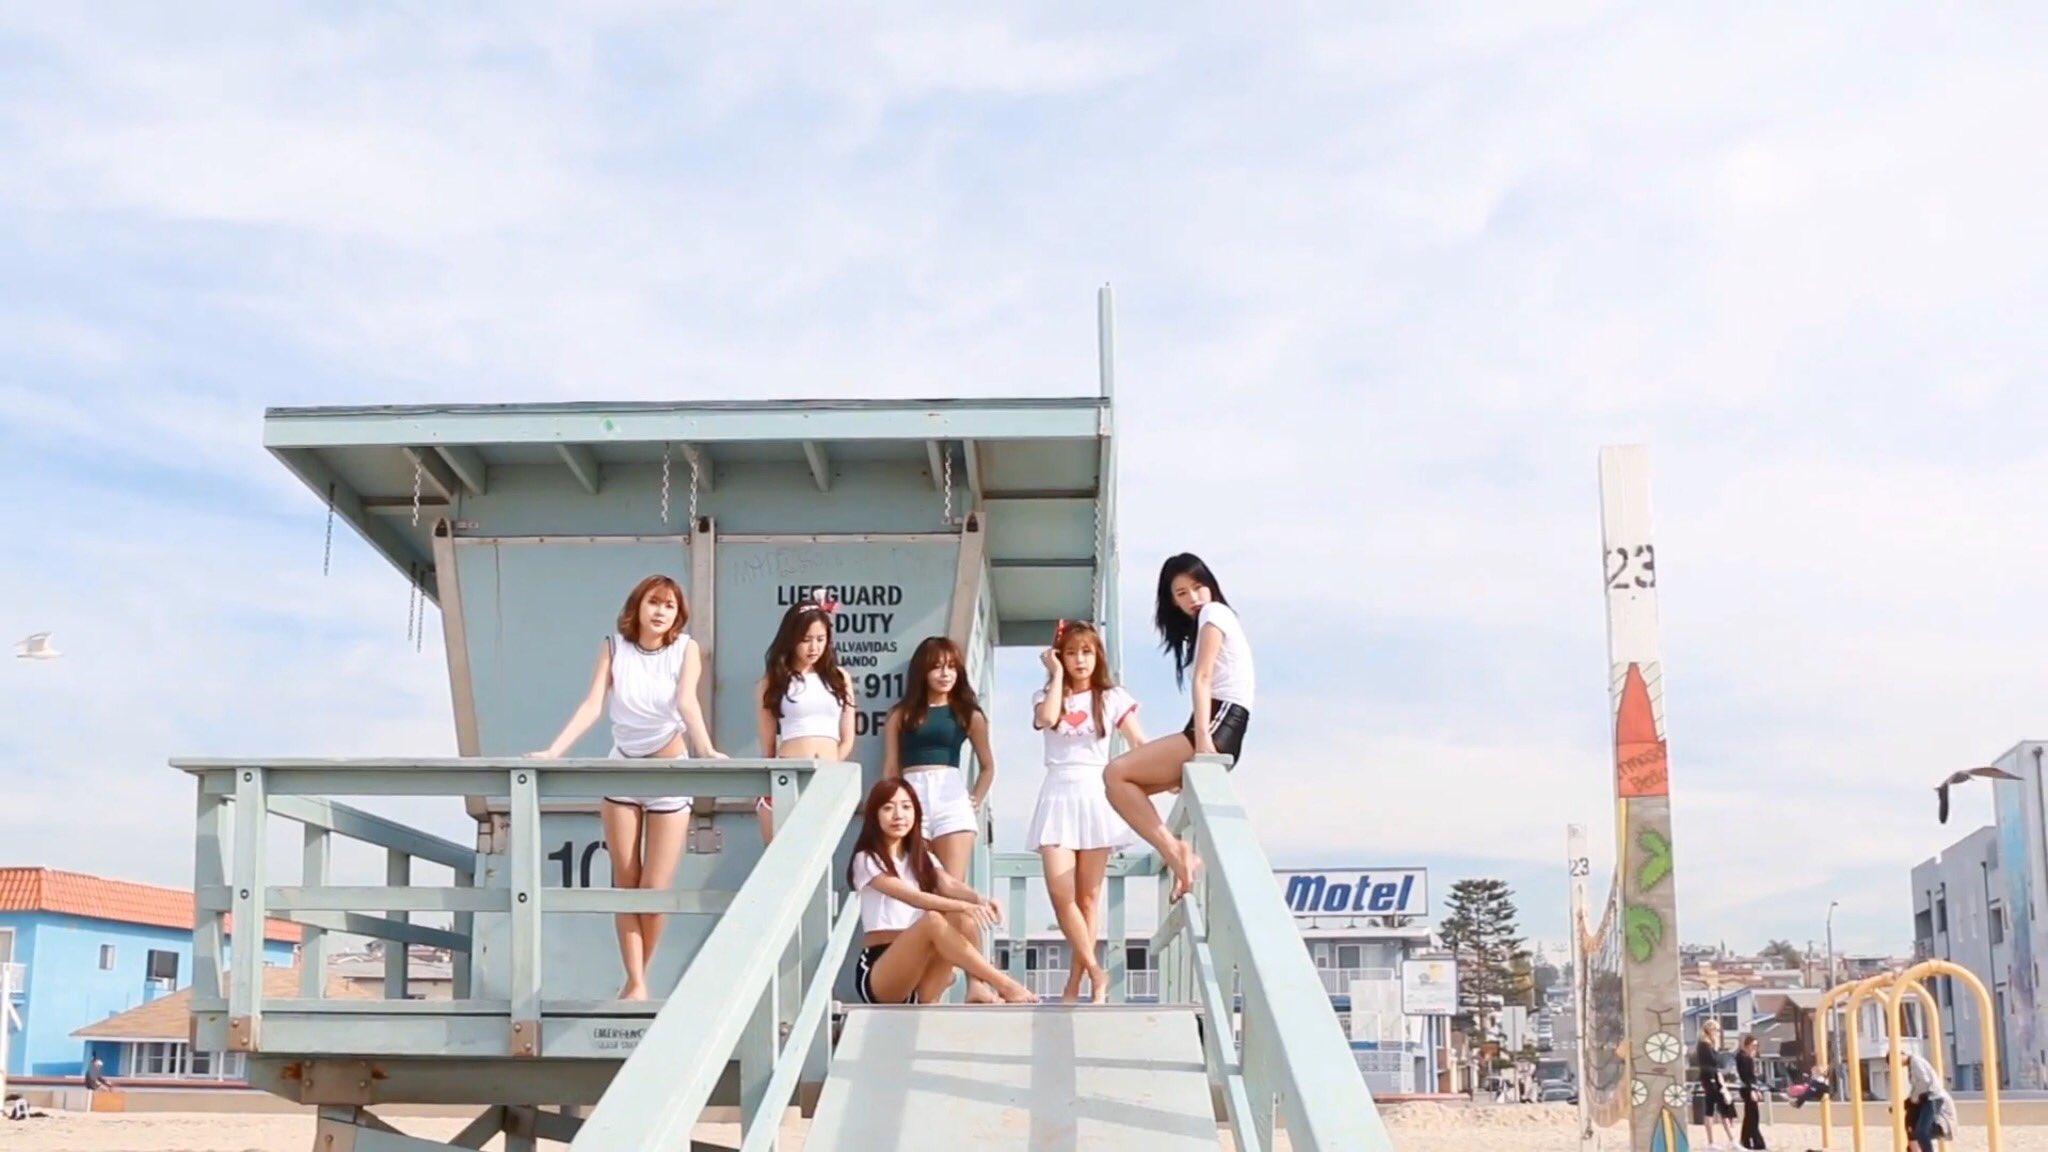 Image: Apink at the beach / Plan A Entertainment